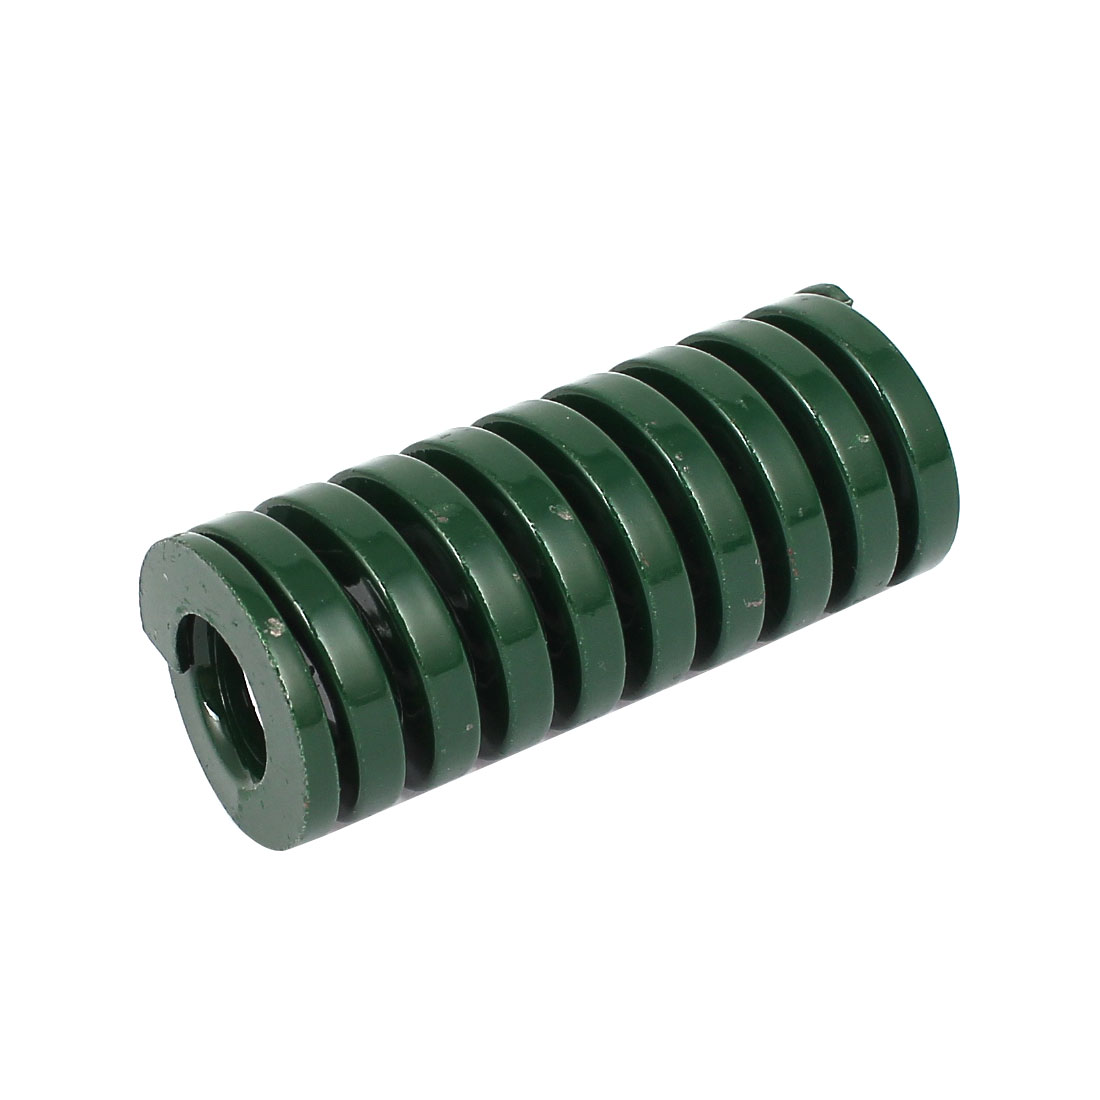 25mm OD 60mm Long Heavy Load Coil Stamping Compression Mold Die Spring Green